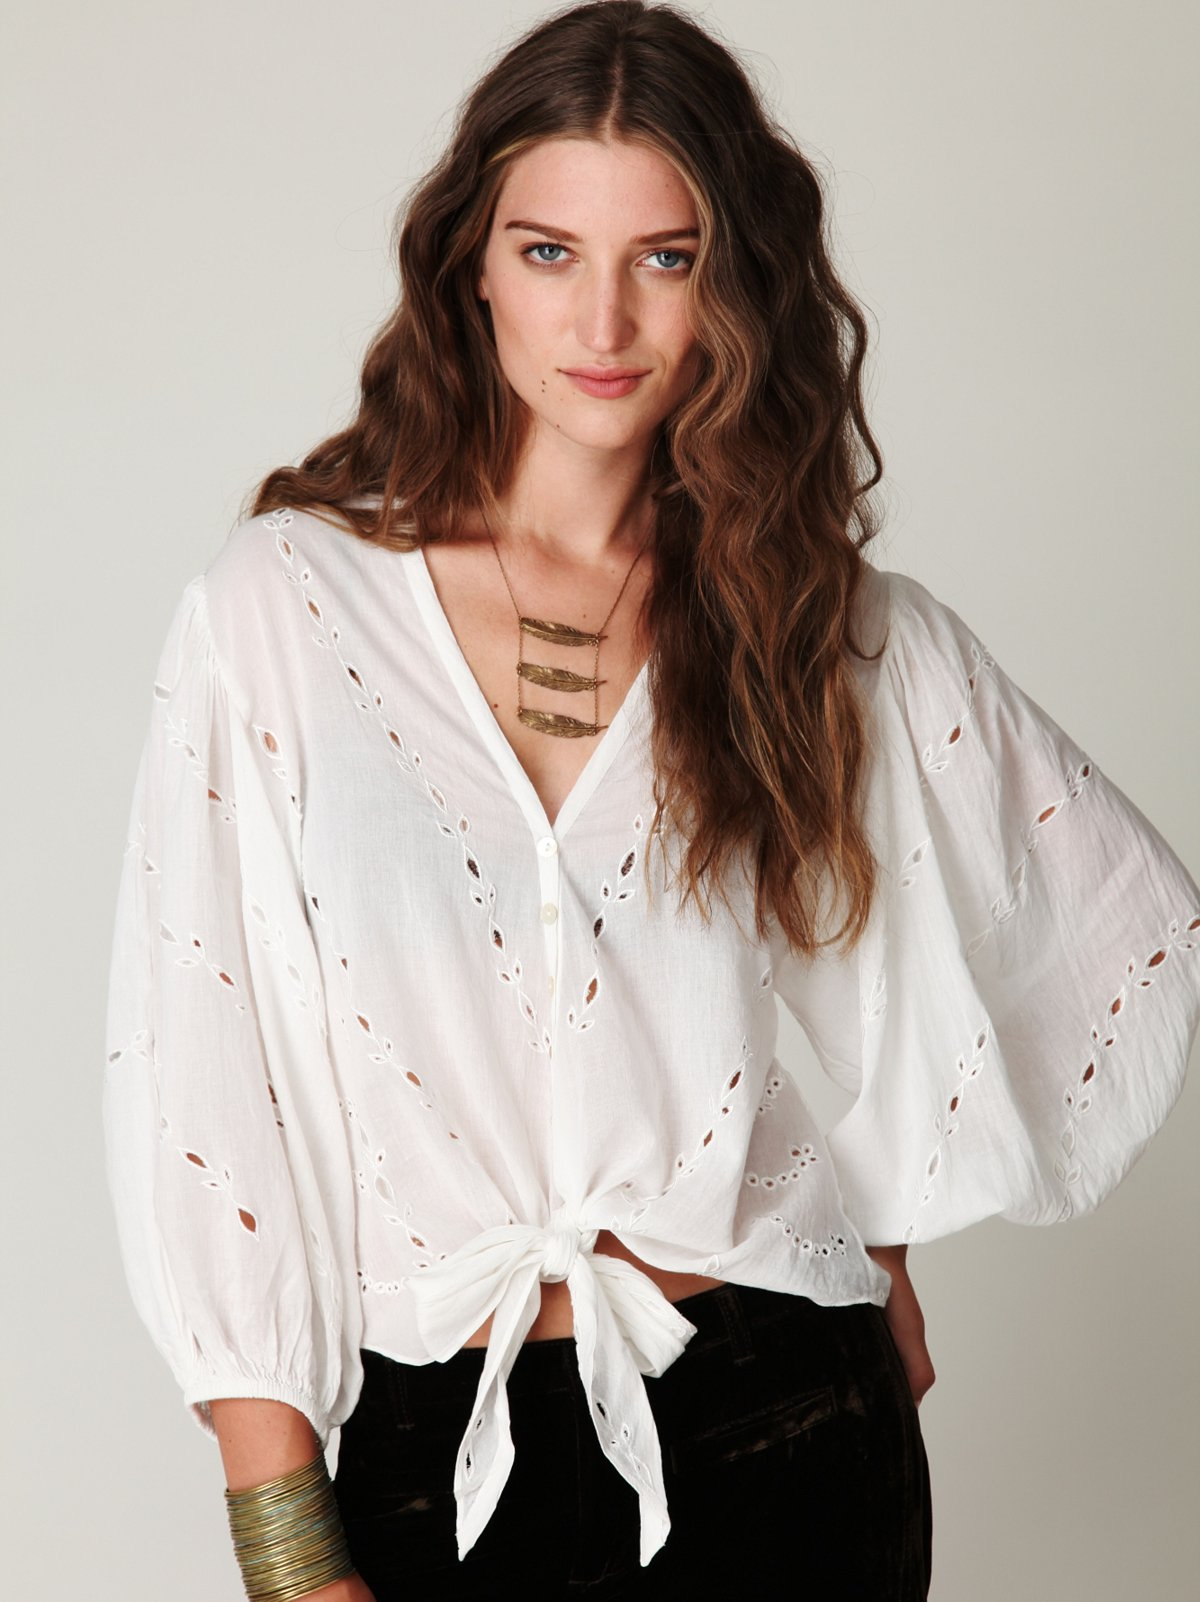 Focus on Center Blouse